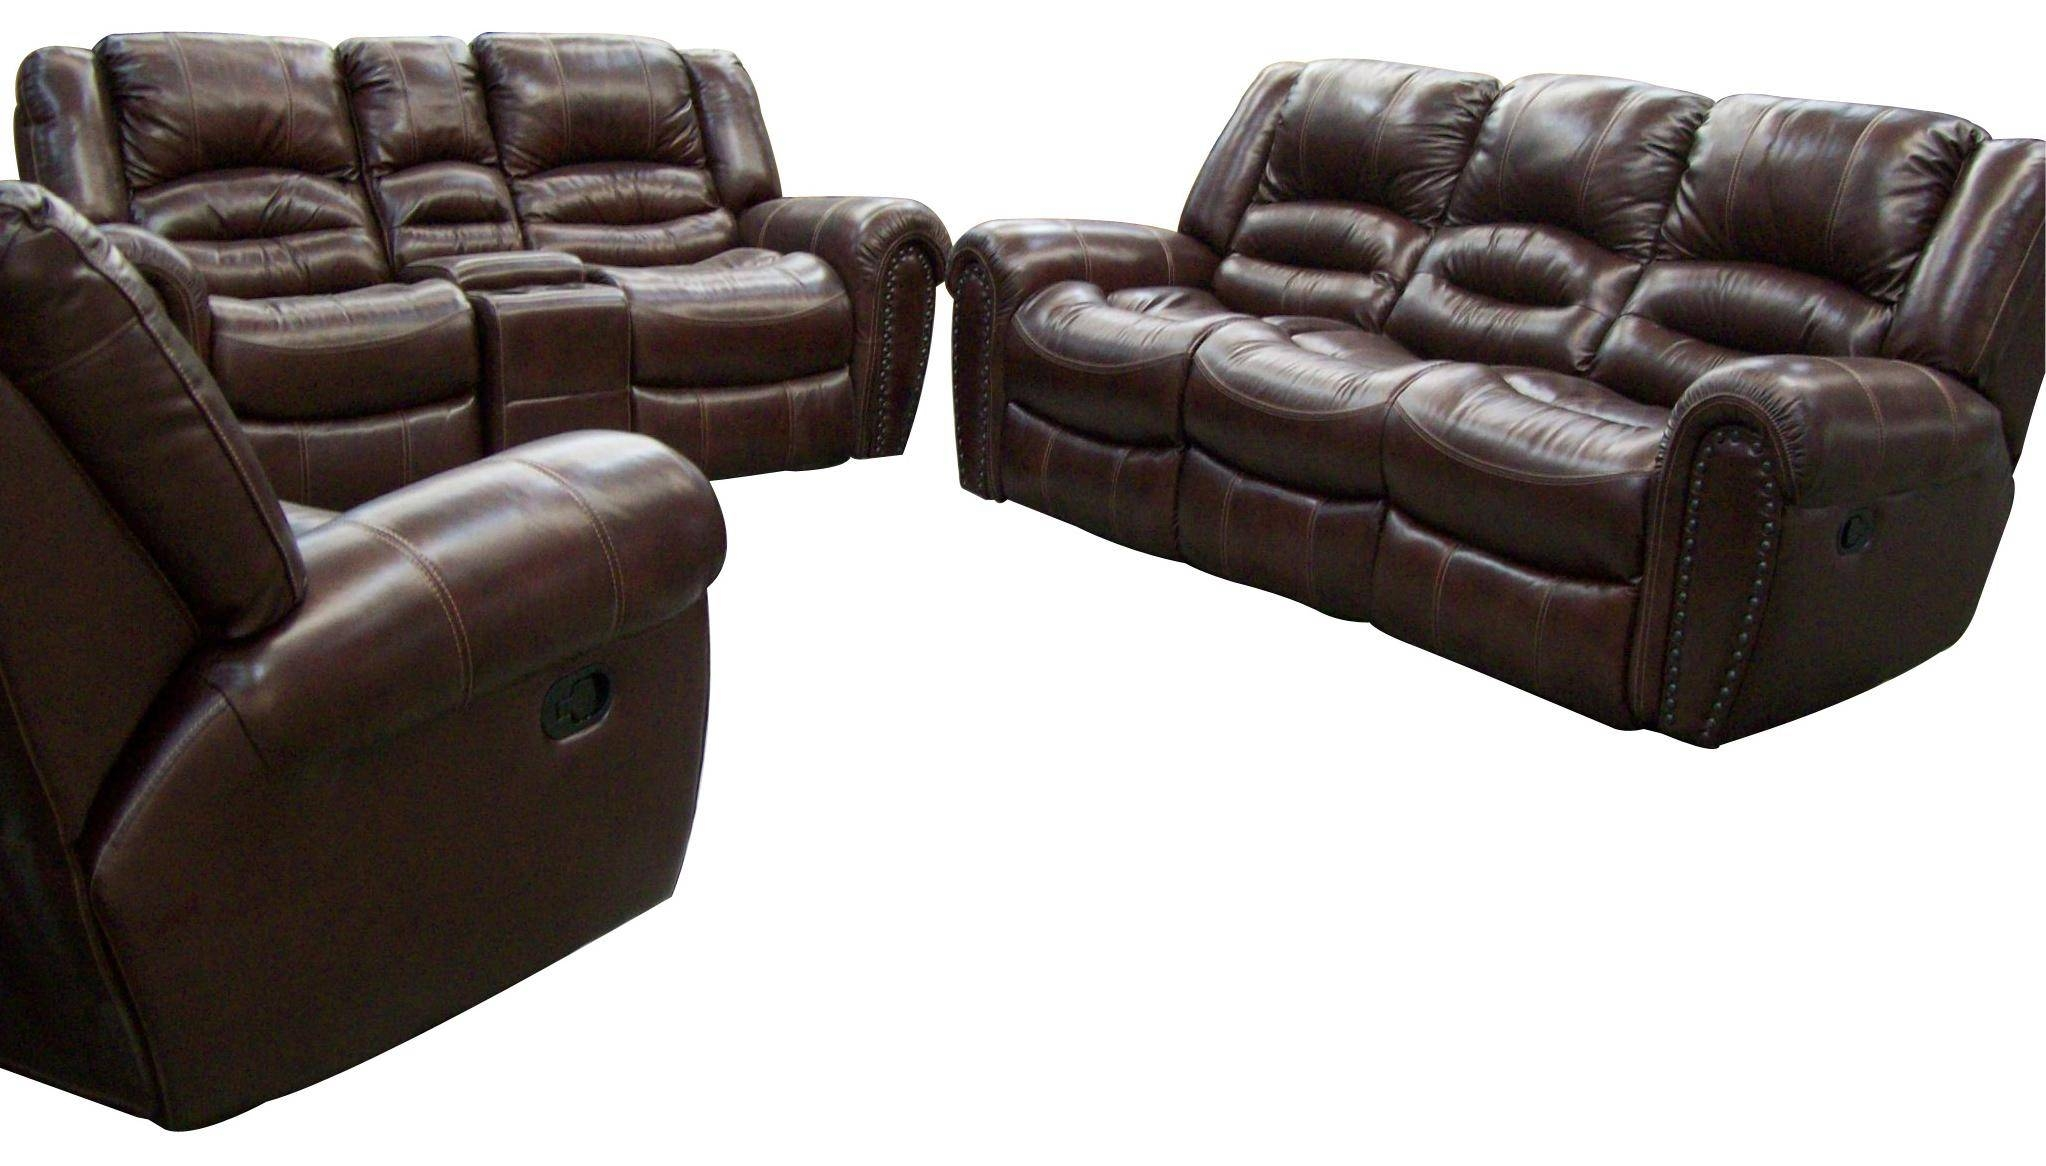 15 Best Collection of Cheers Recliner Sofas